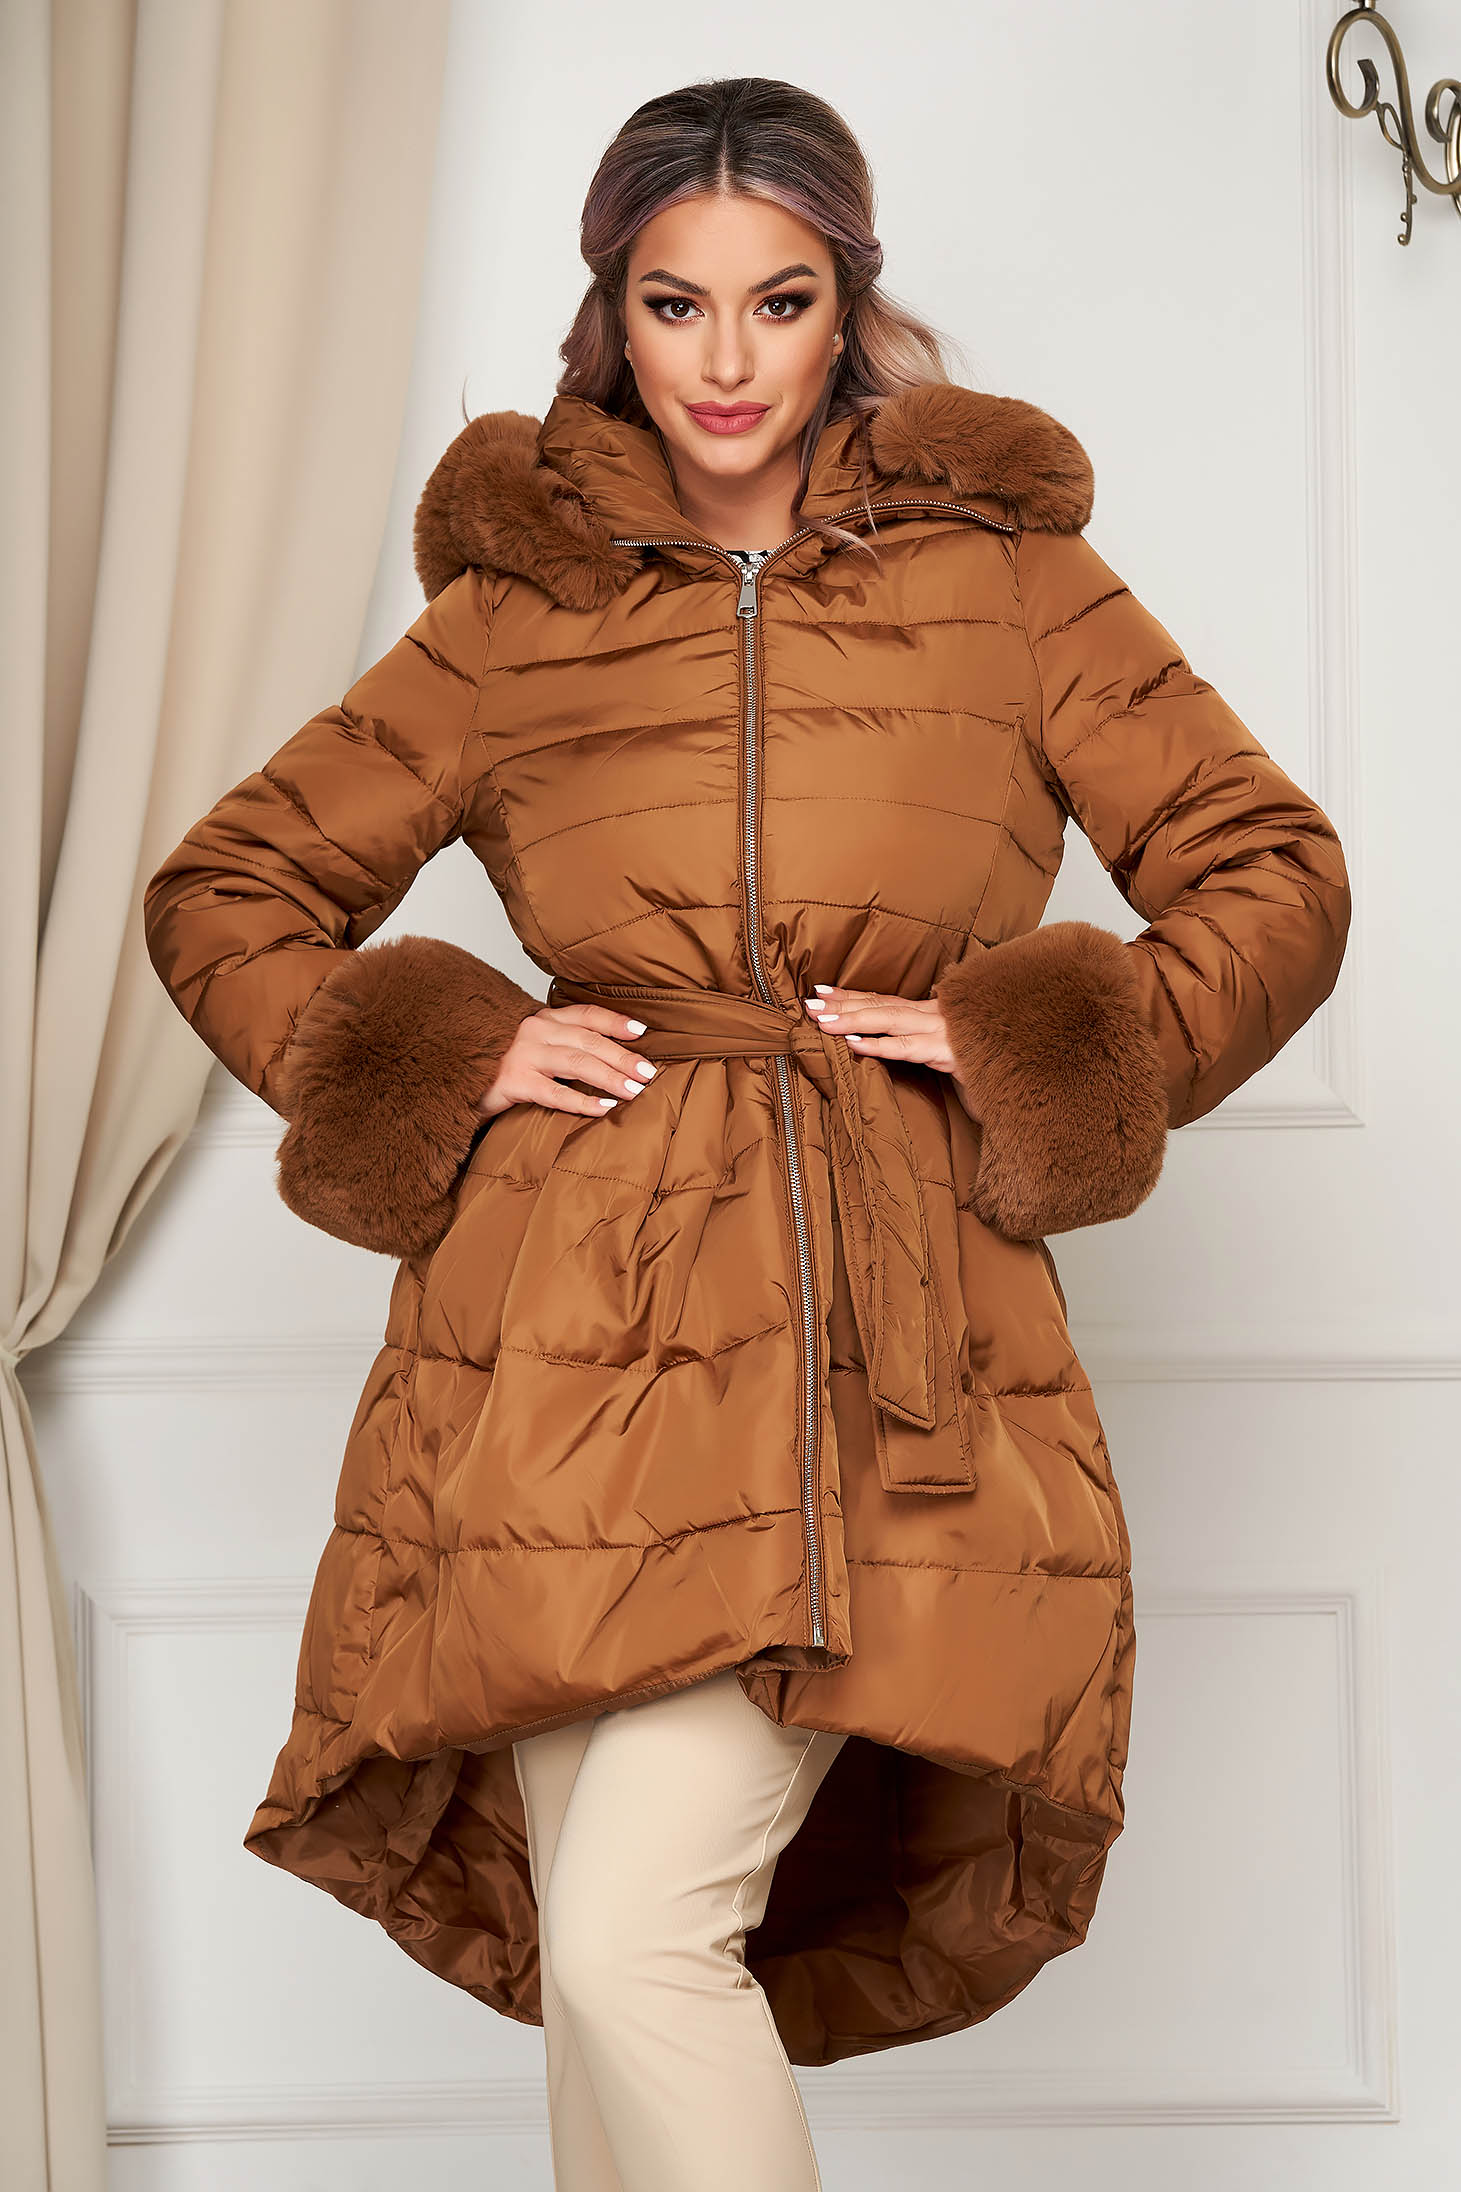 Brown jacket casual from slicker asymmetrical with faux fur accessory